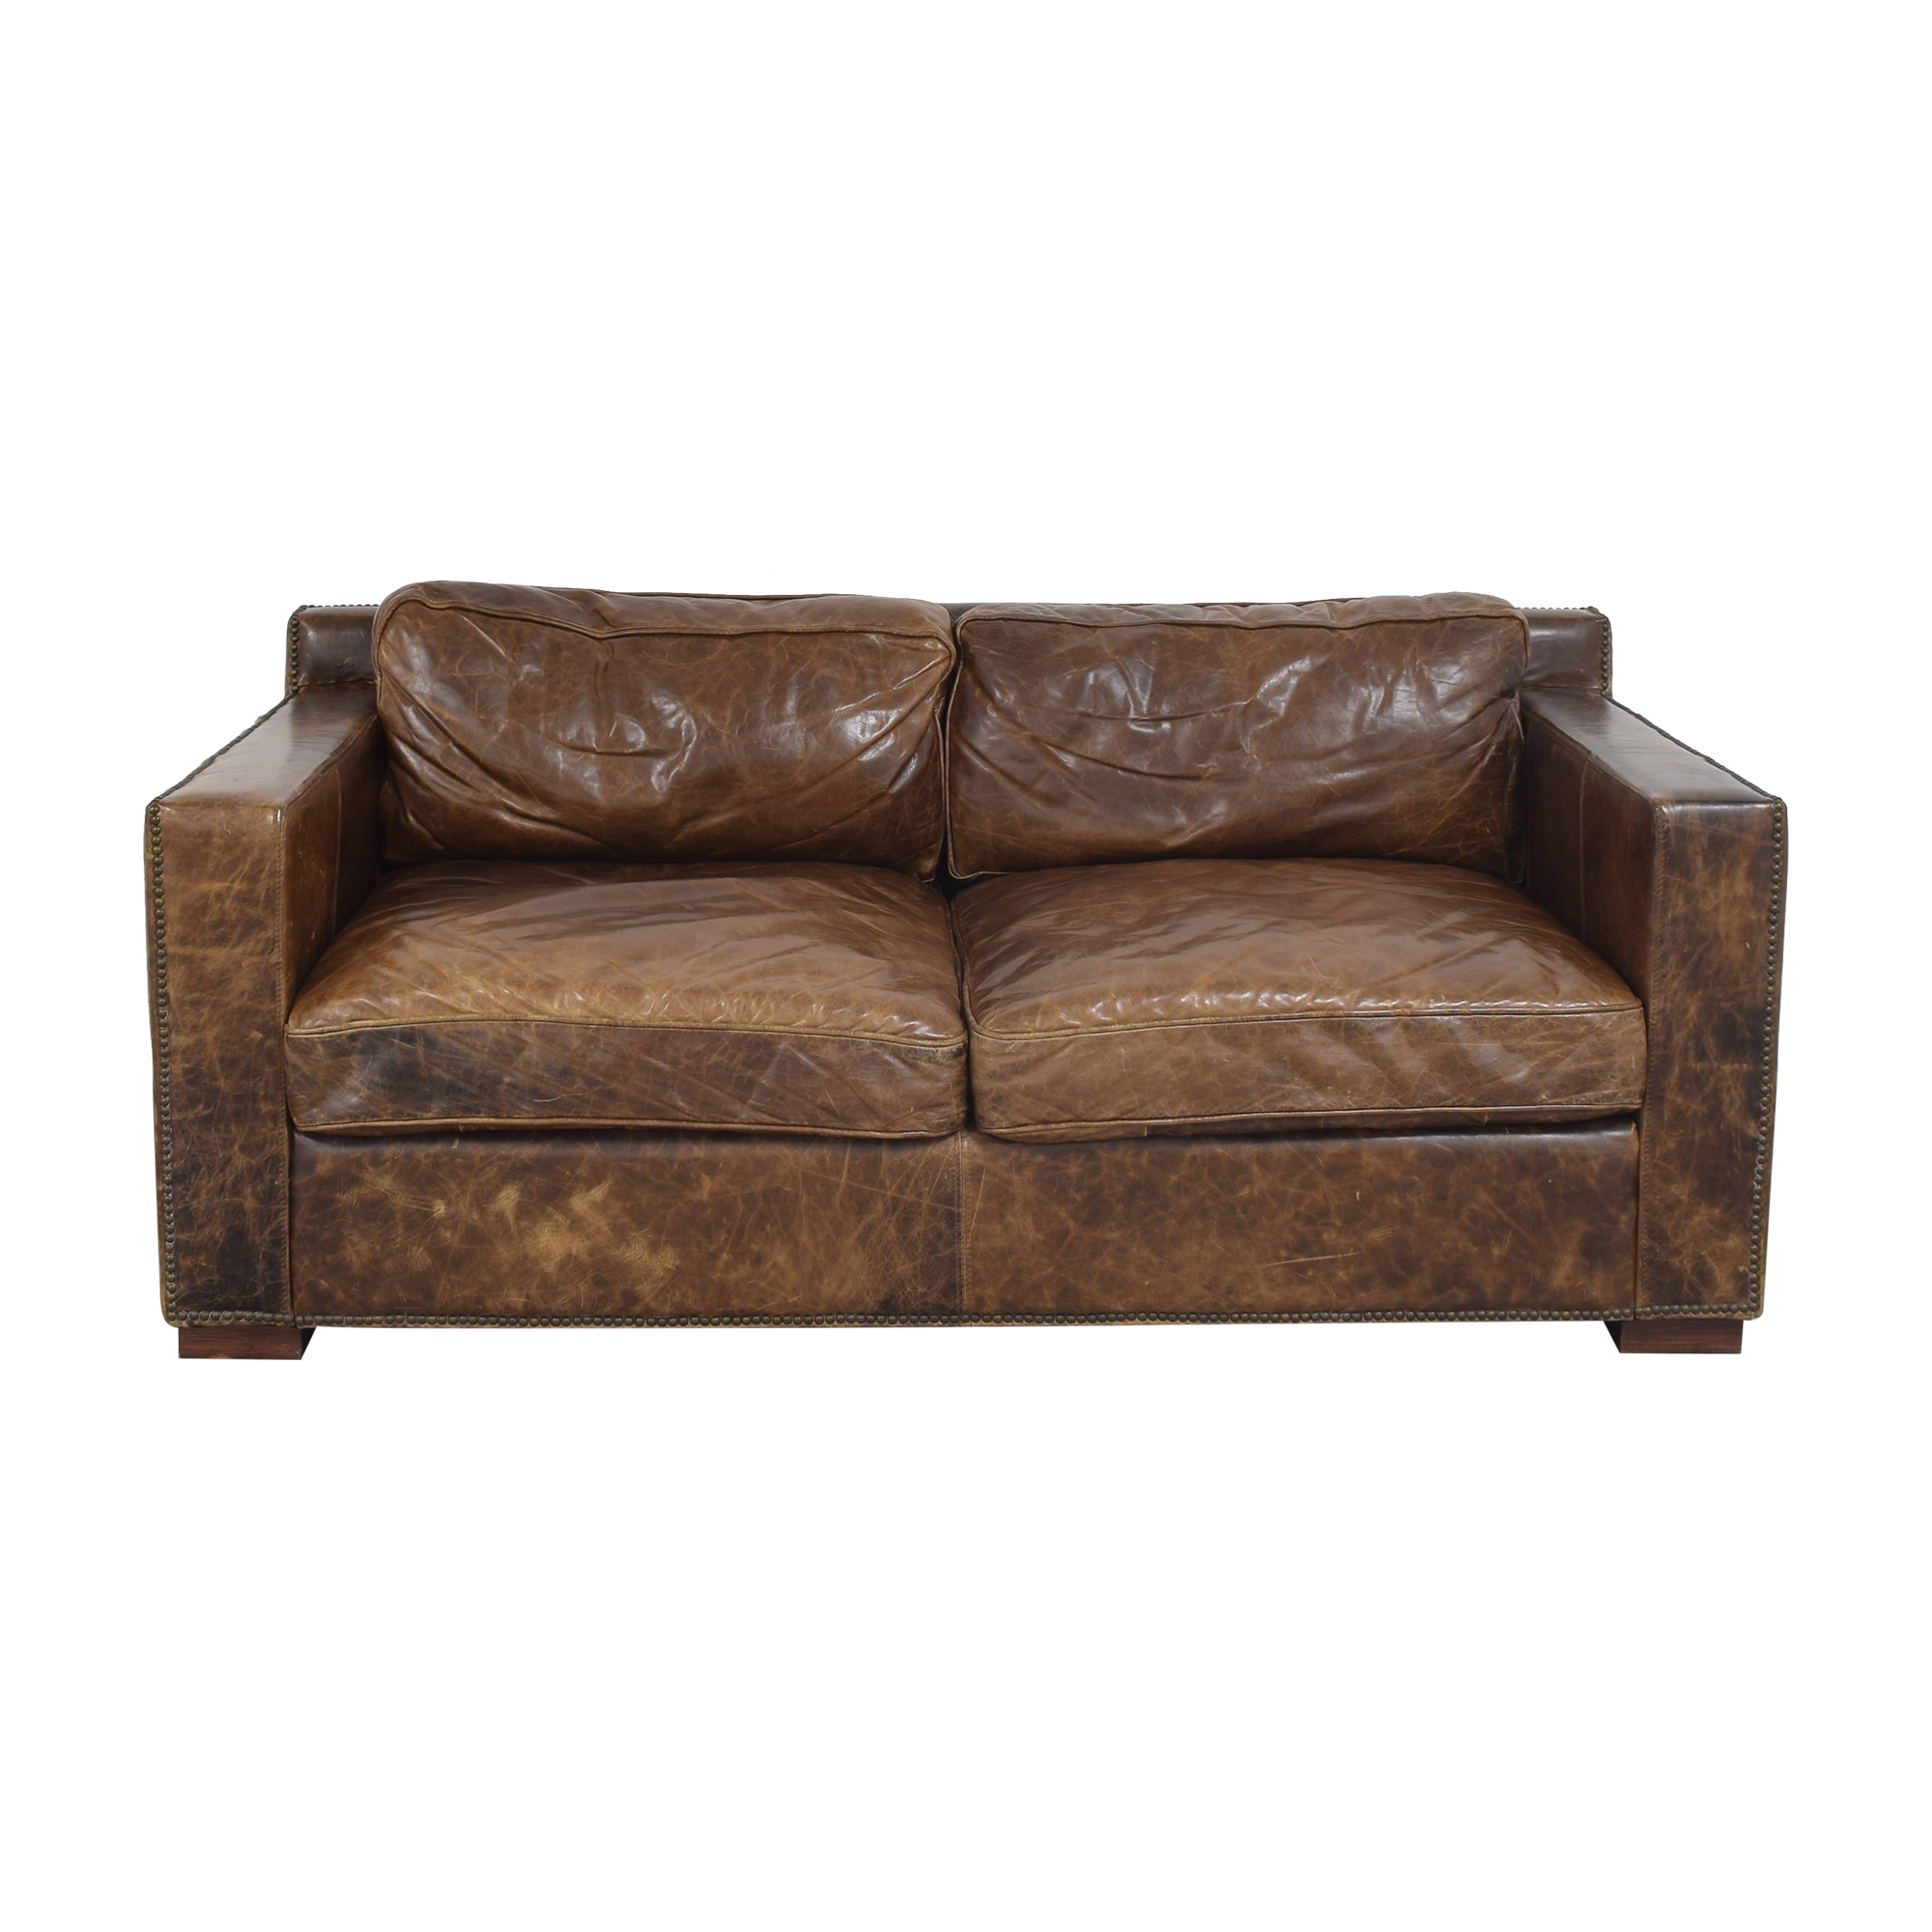 buy Restoration Hardware Collins Sofa with Nailheads Restoration Hardware Sofas